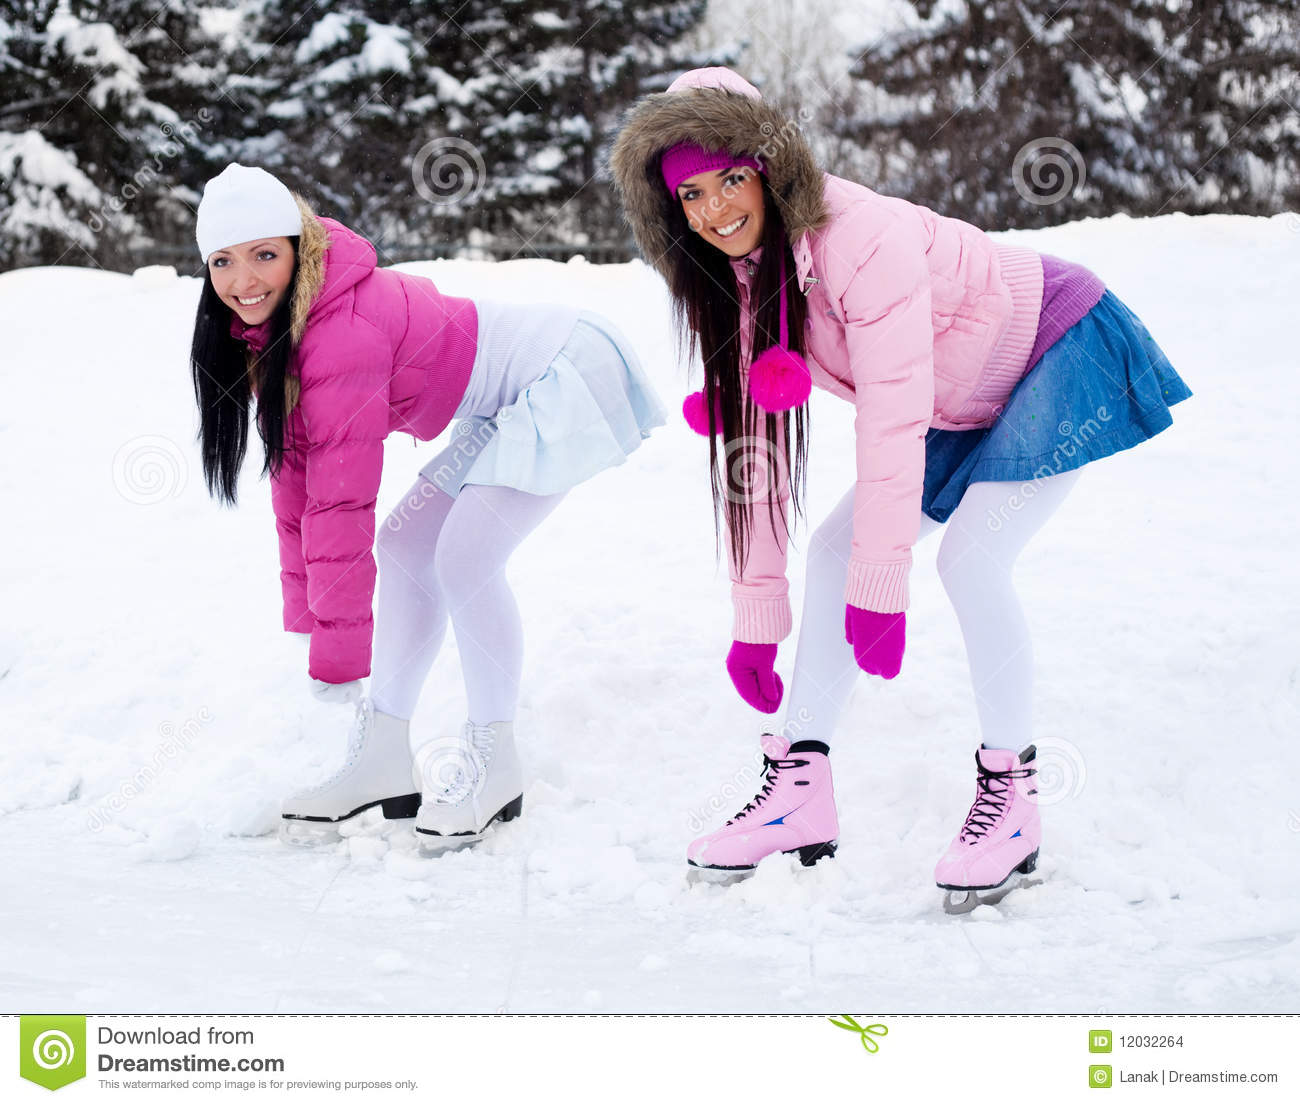 Girl Skate Wallpaper Two Girls Ice Skating Stock Images Image 12032264